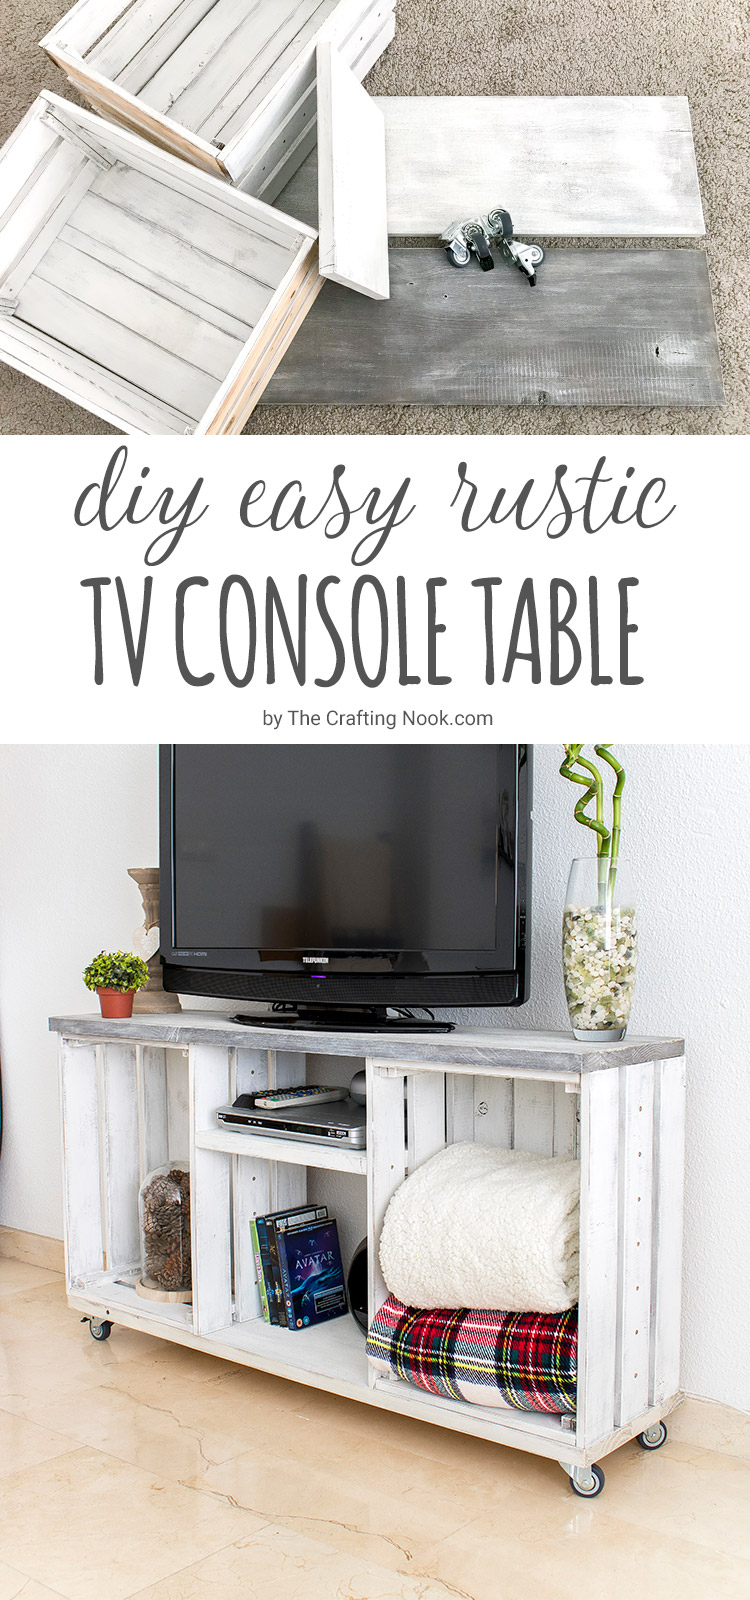 Diy Easy Rustic Tv Console Table The Crafting Nook